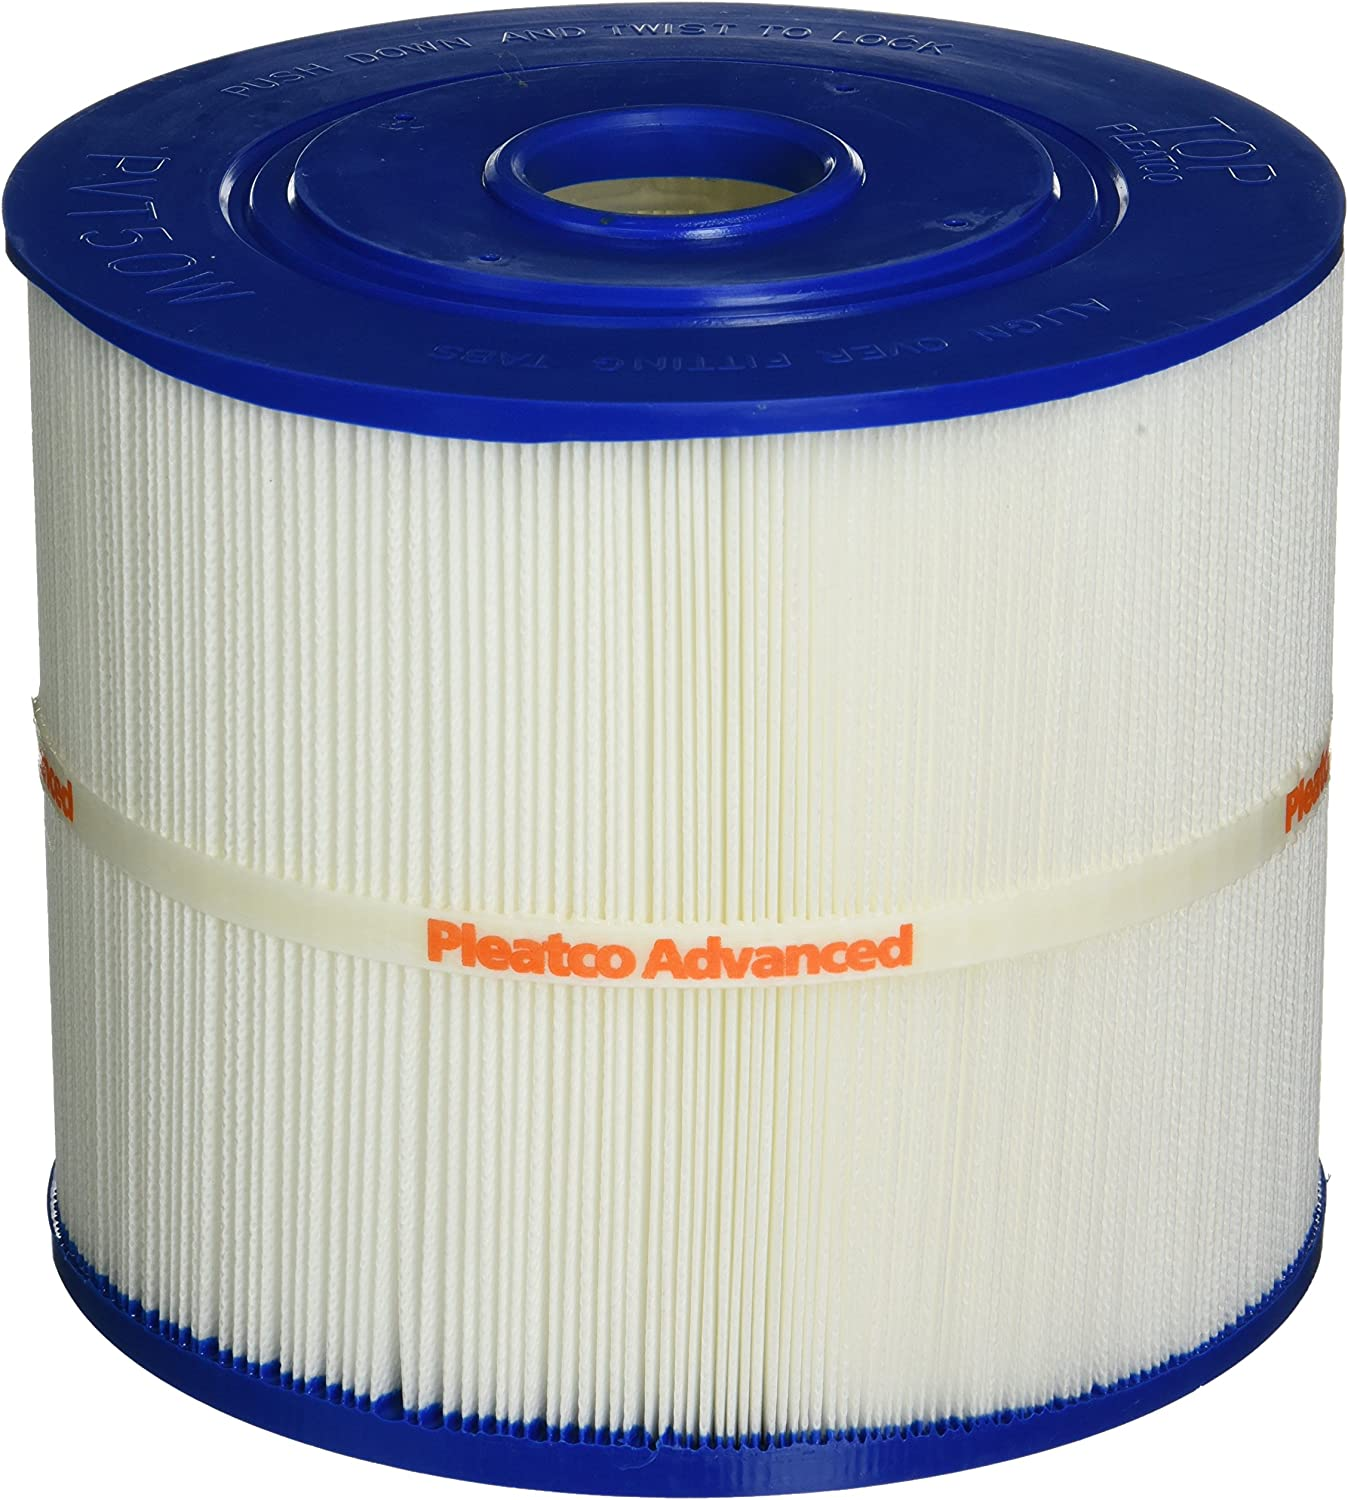 Pleatco PVT50W Replacement Cartridge for Vita Spa Filtration Filter, 1 Cartridge